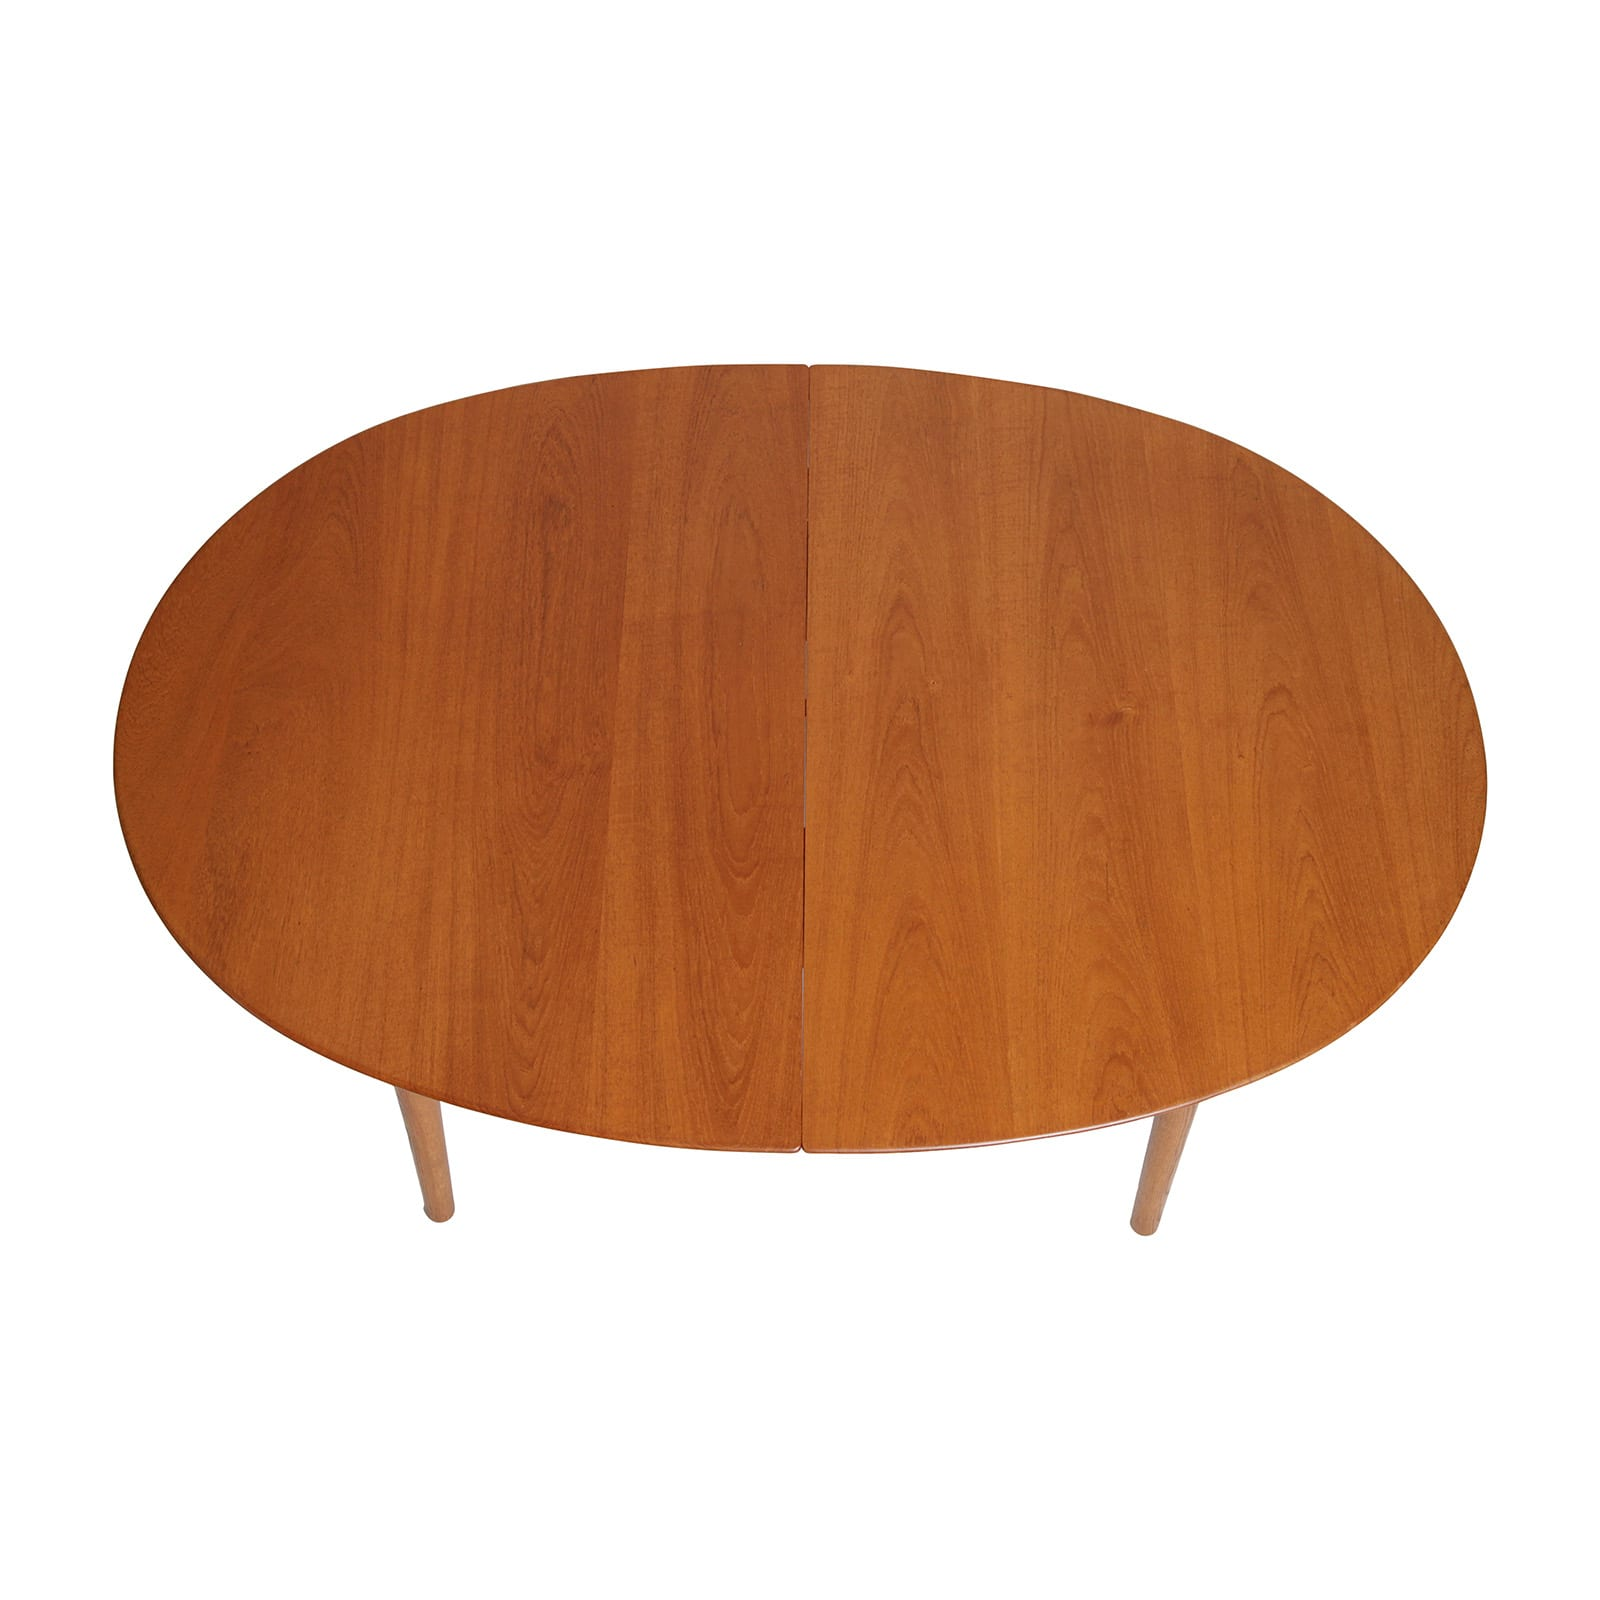 An extendable oval dining table